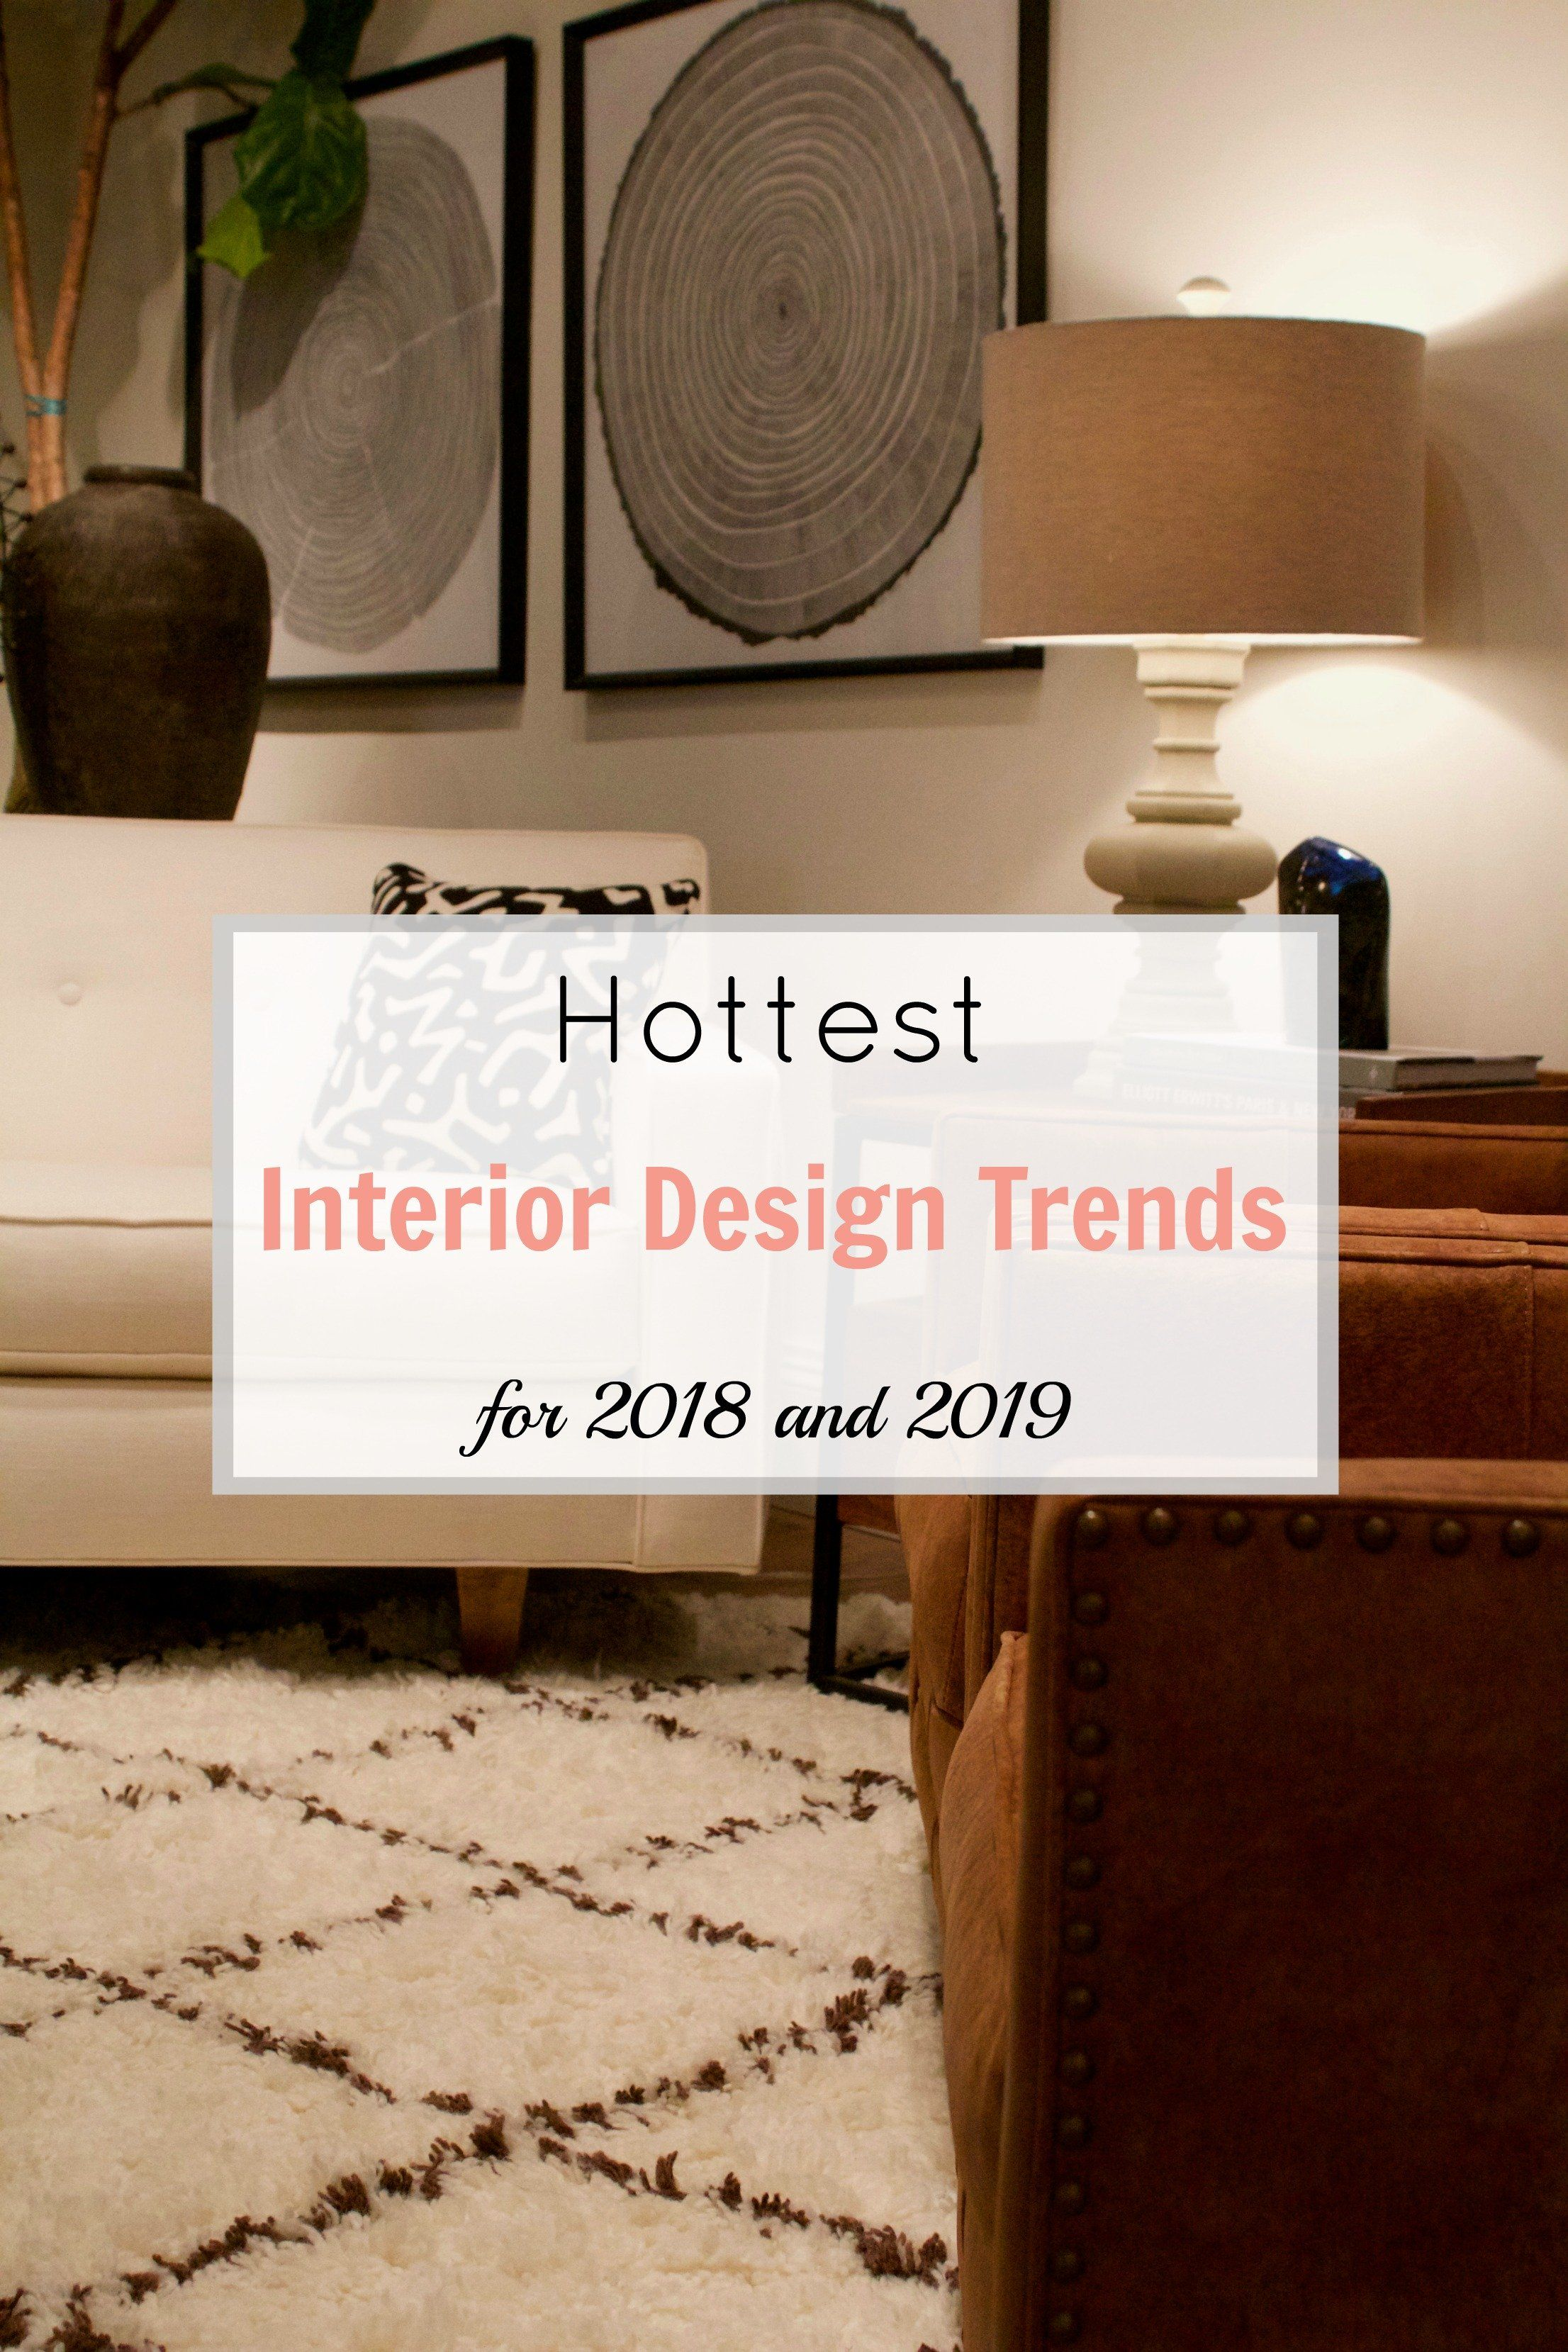 Interio Sofa Thierry Hottest Interior Design Trends For 2018 And 2019 Ultraviolet